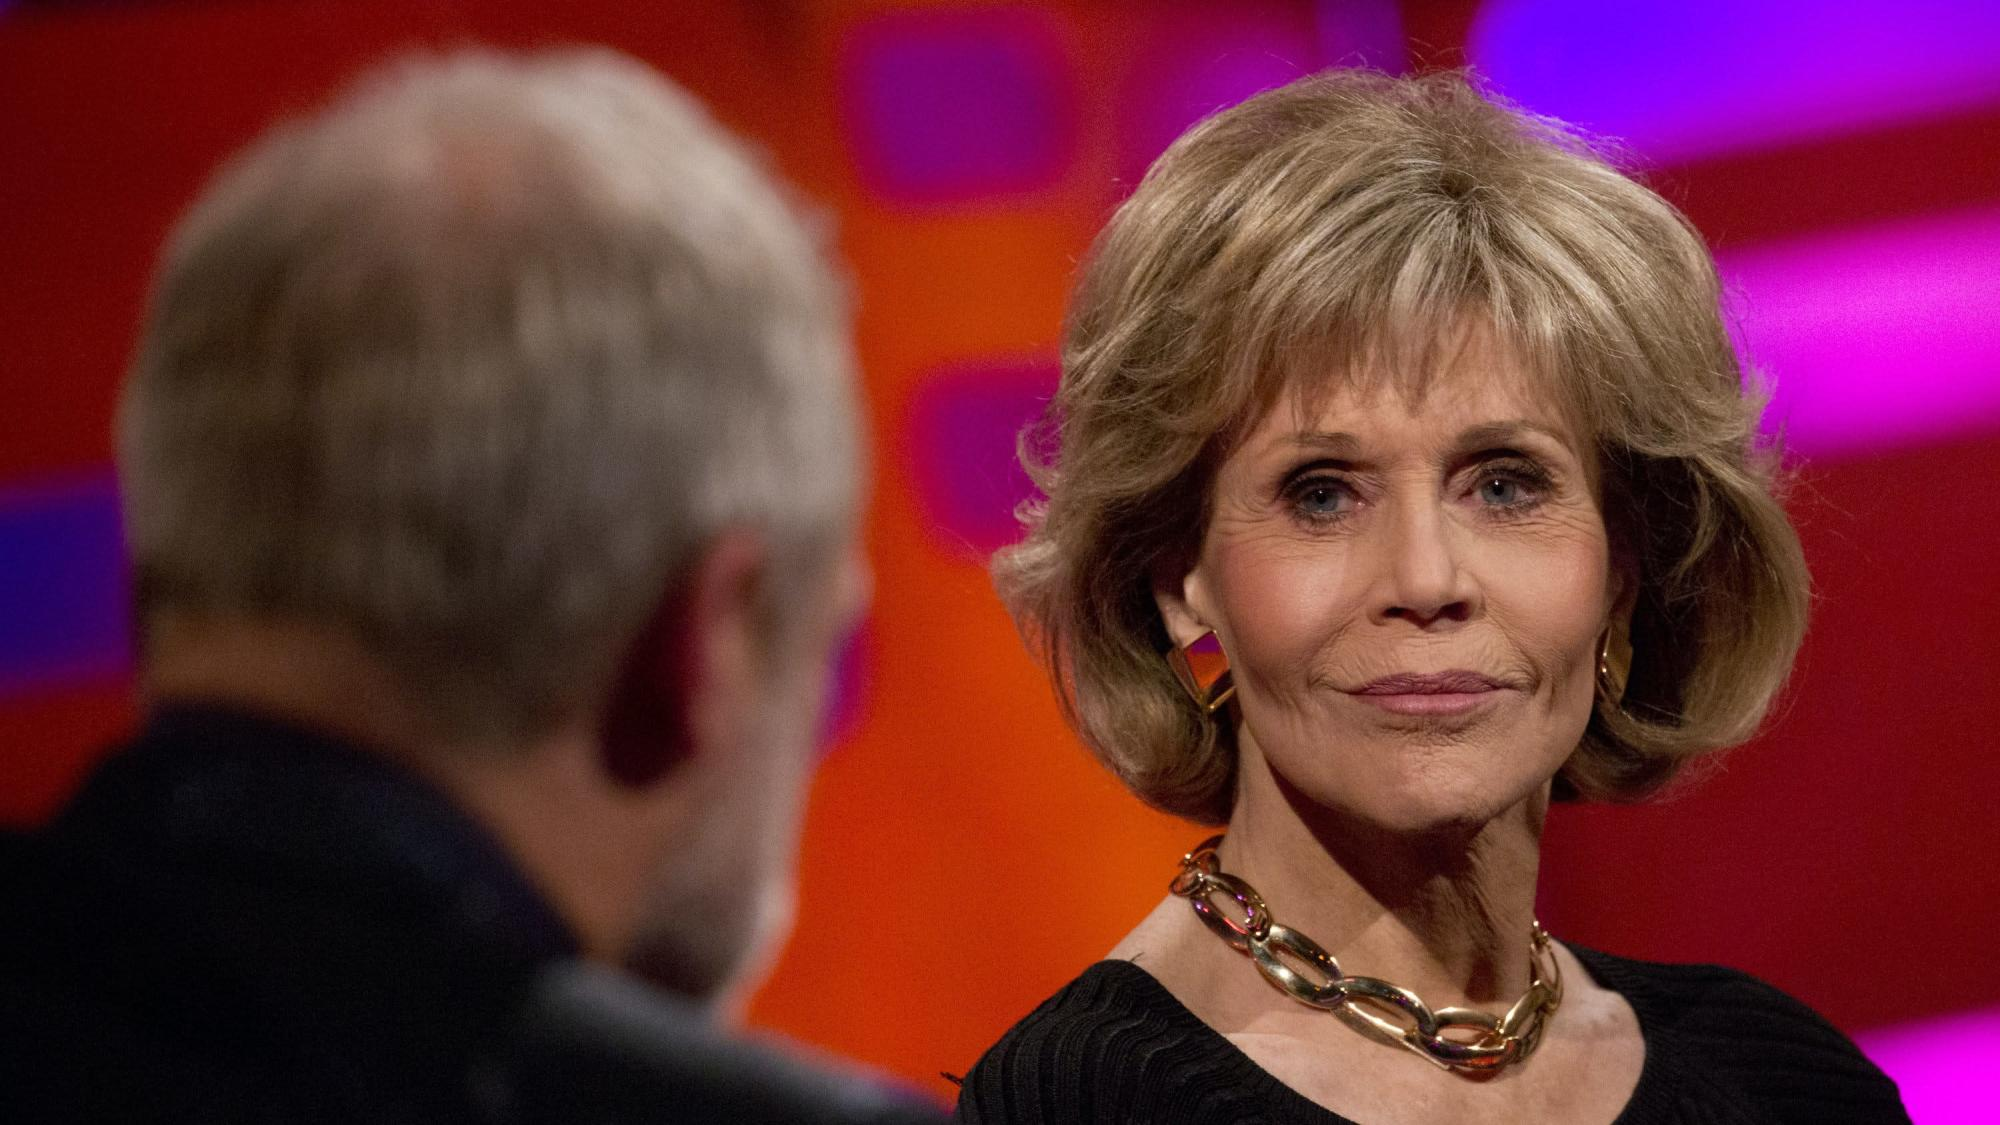 Jane Fonda: I hope my climate protests show old folks can be involved too